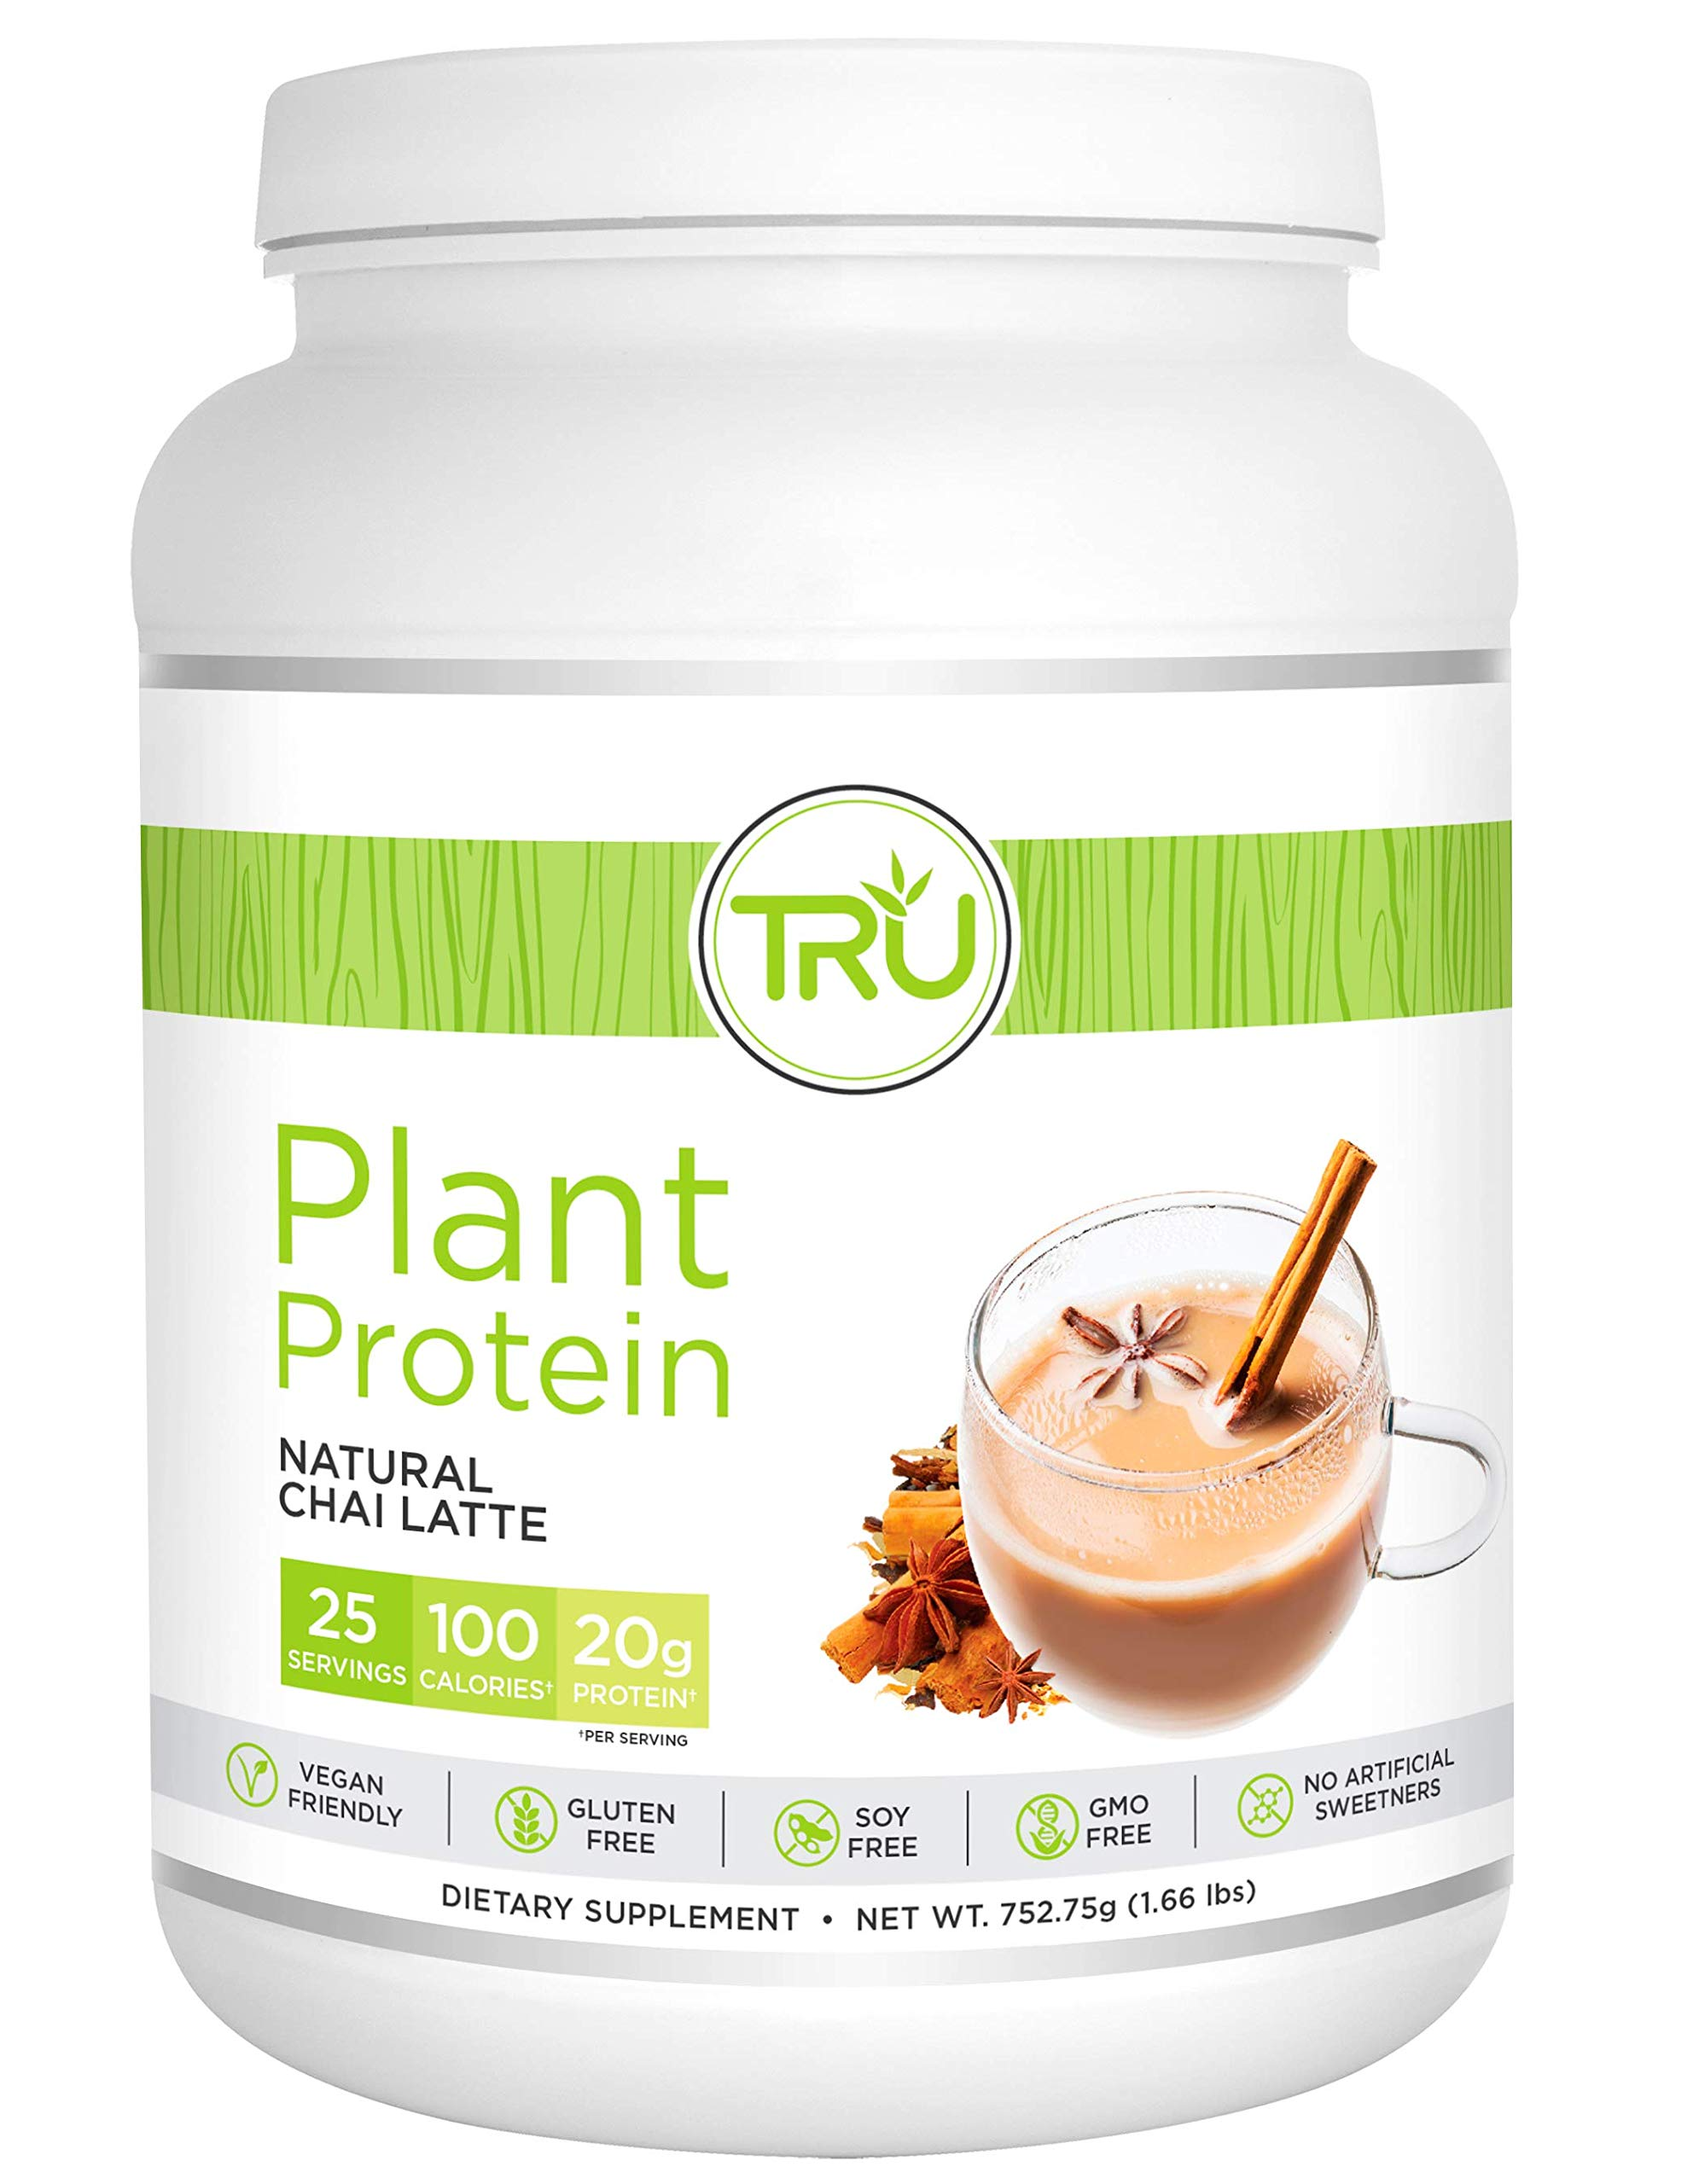 Tru Protein Chai Latte - 25 Serving - Natural Plant Based Protein